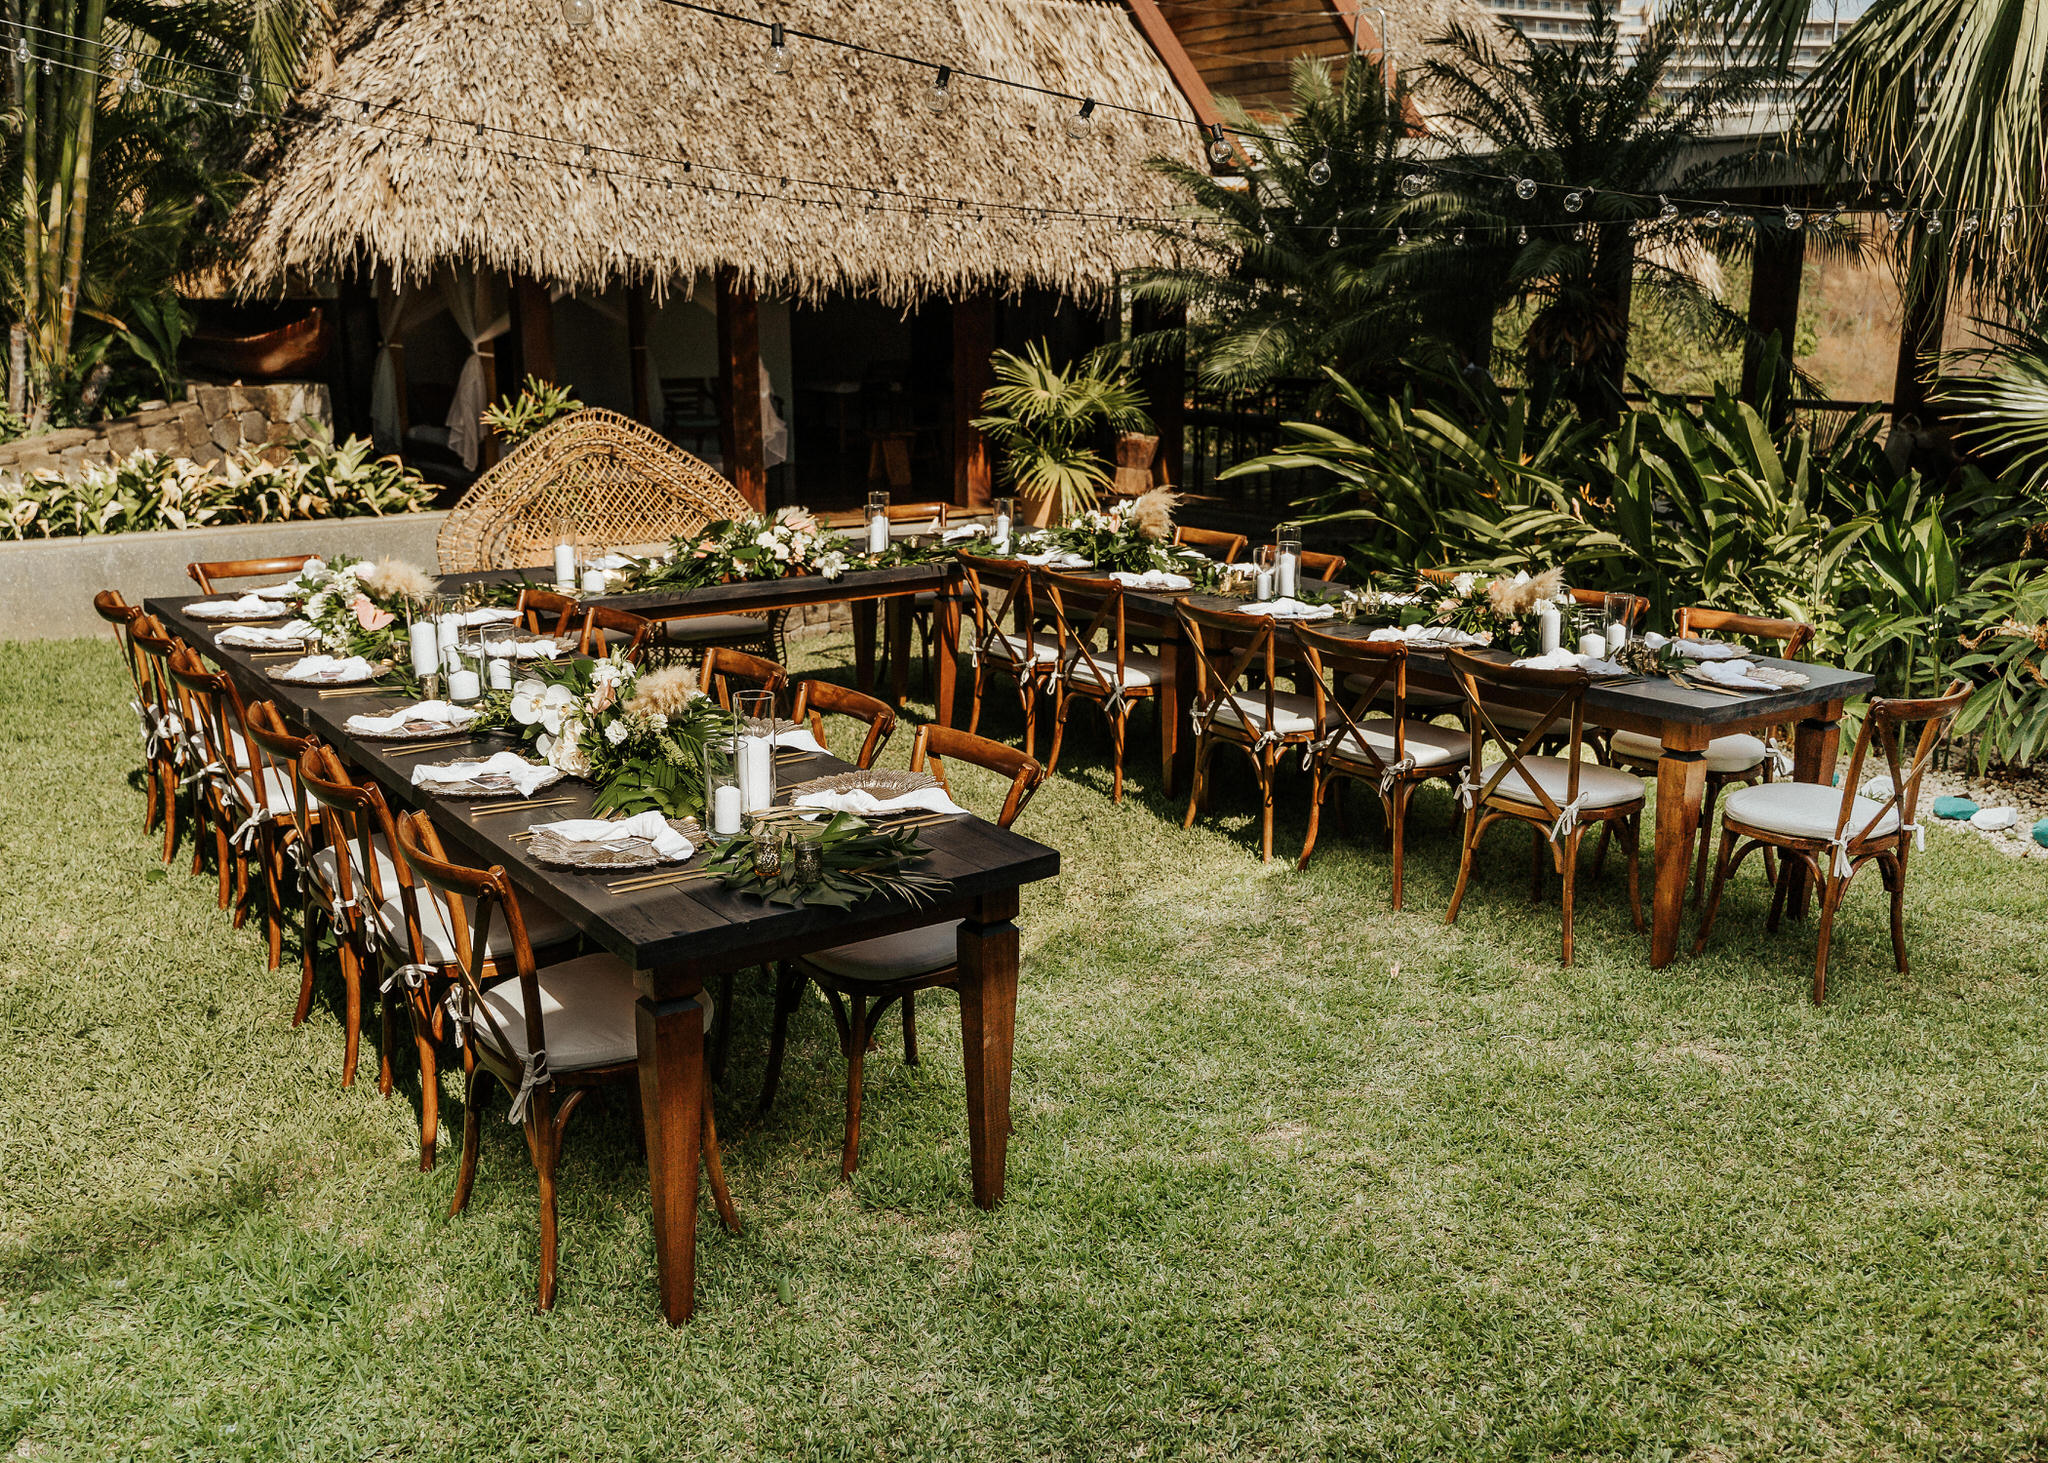 outdoor set up greenery palms table